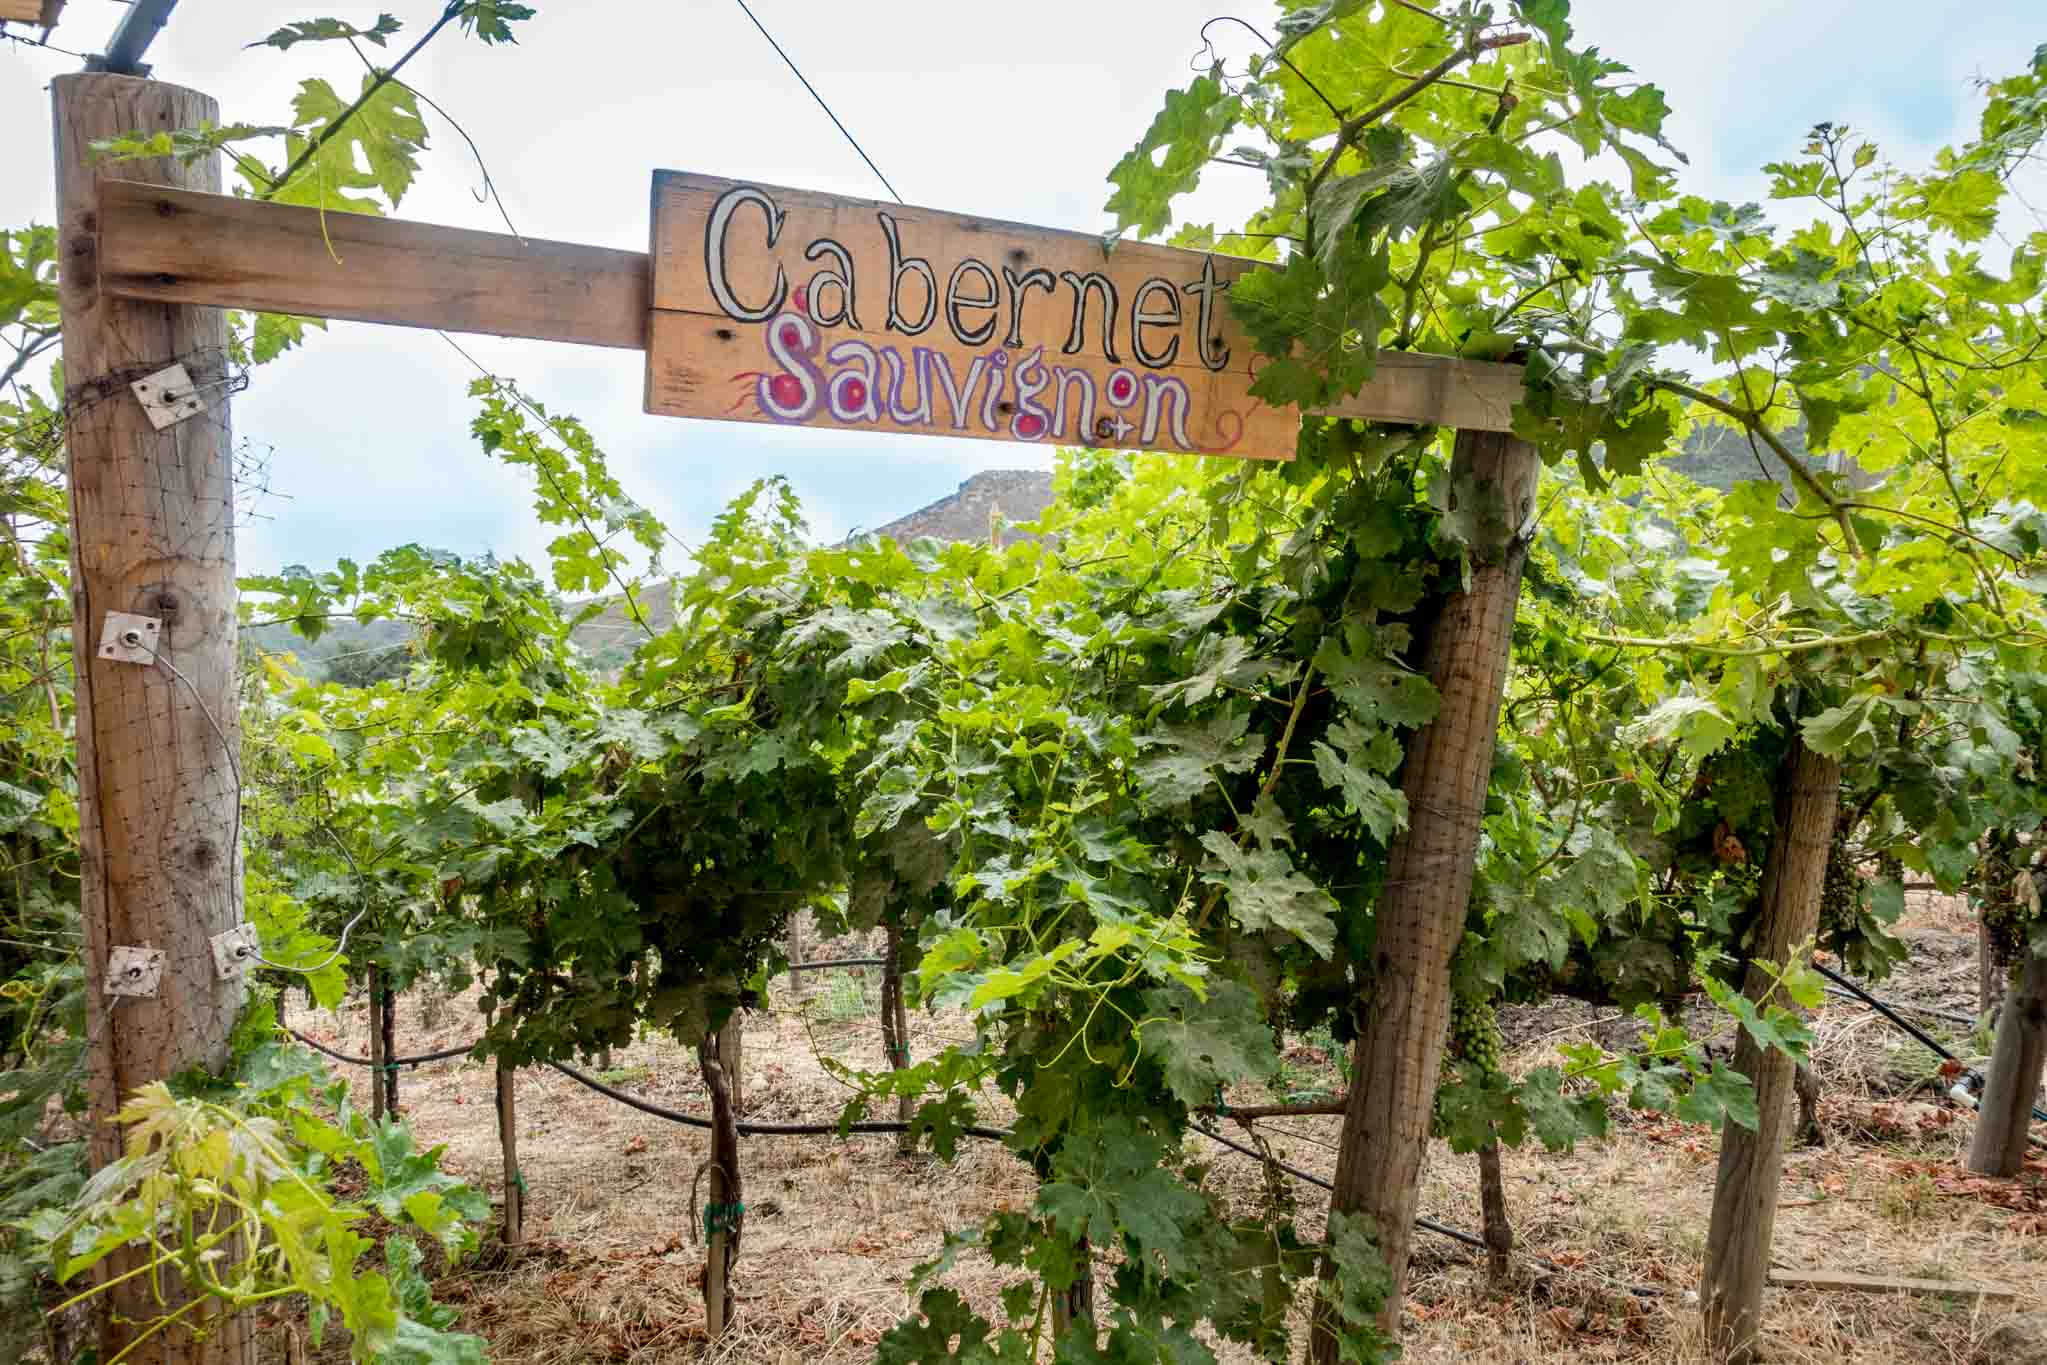 Cabernet Sauvignon vineyard in Mexico